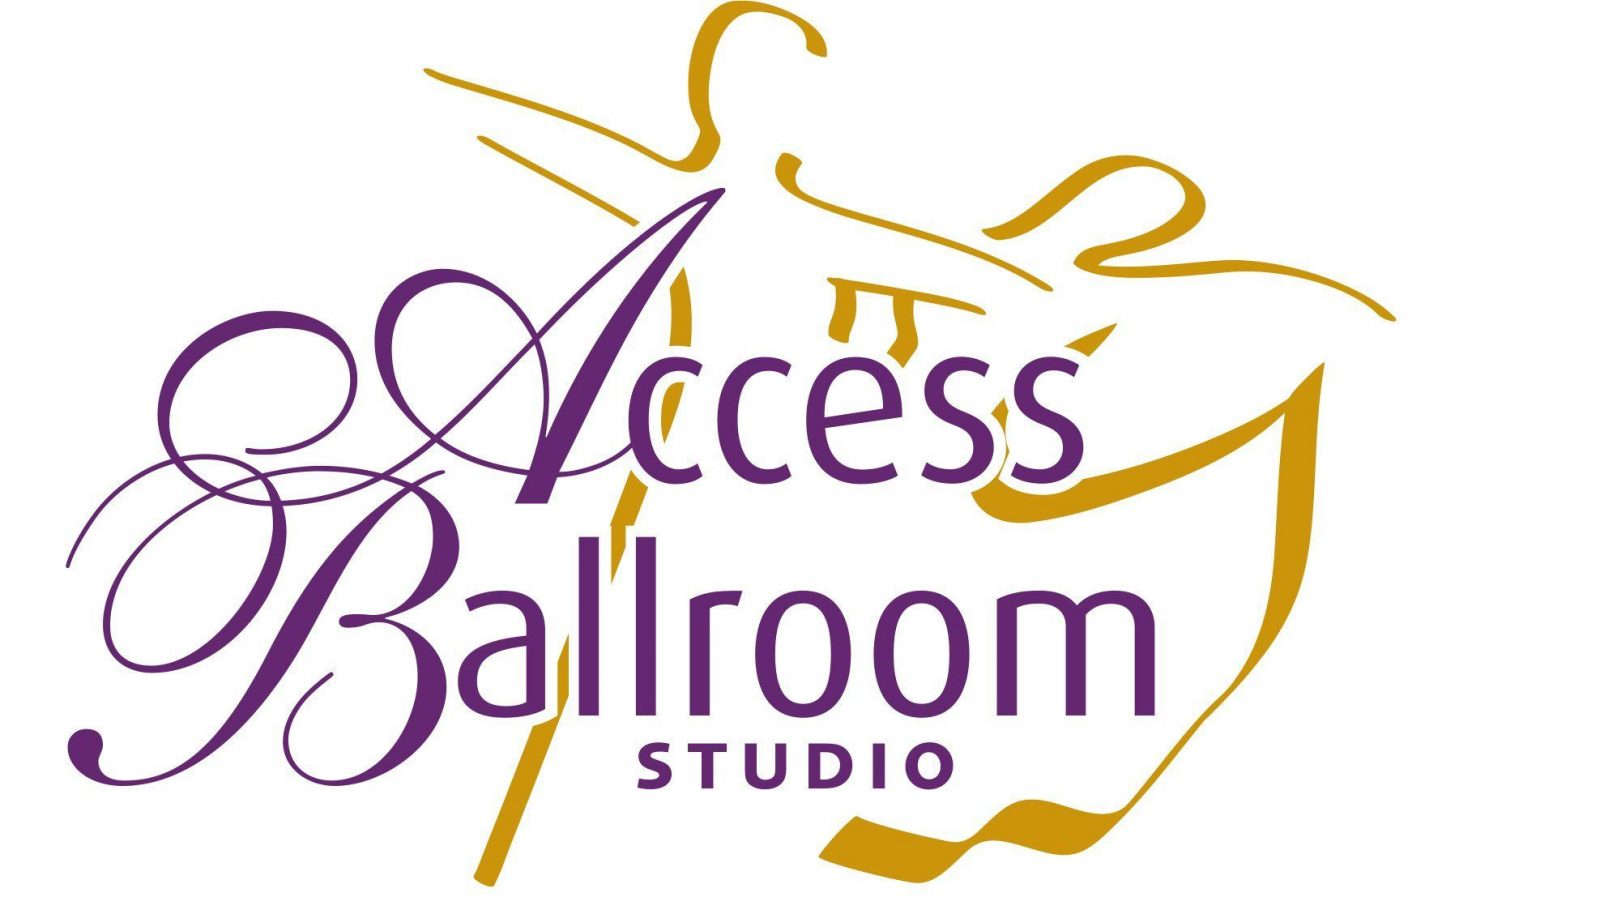 Access Ballroom logo white backround orange couple silouette dancing and the writing is in purple